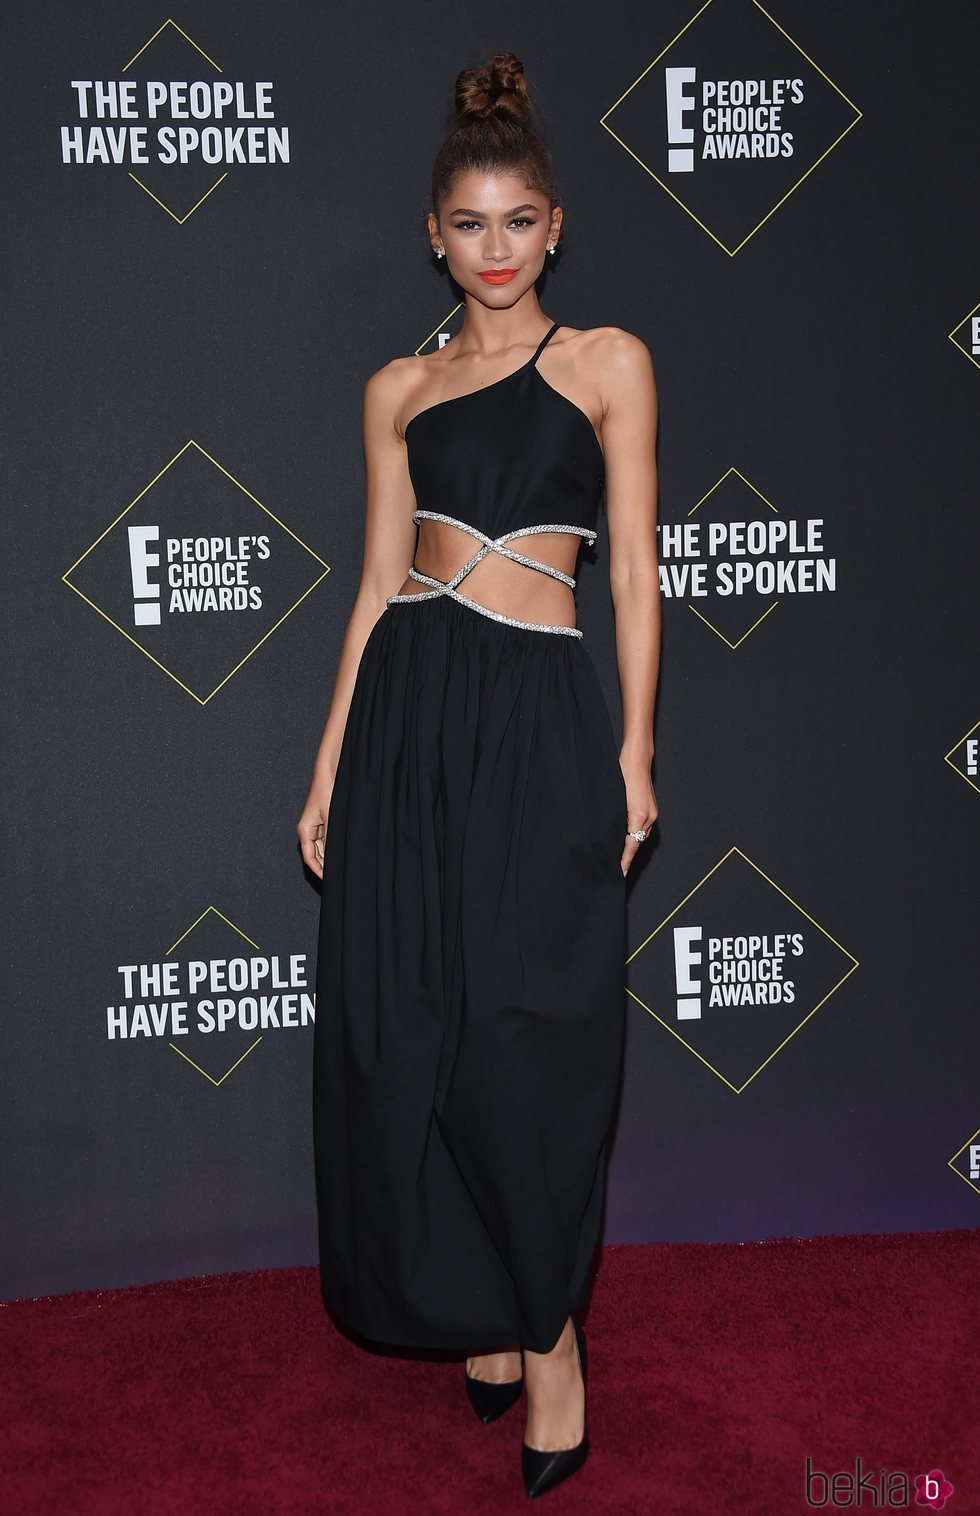 Zendaya en la alfombra roja de los People's Choice Awards 2019